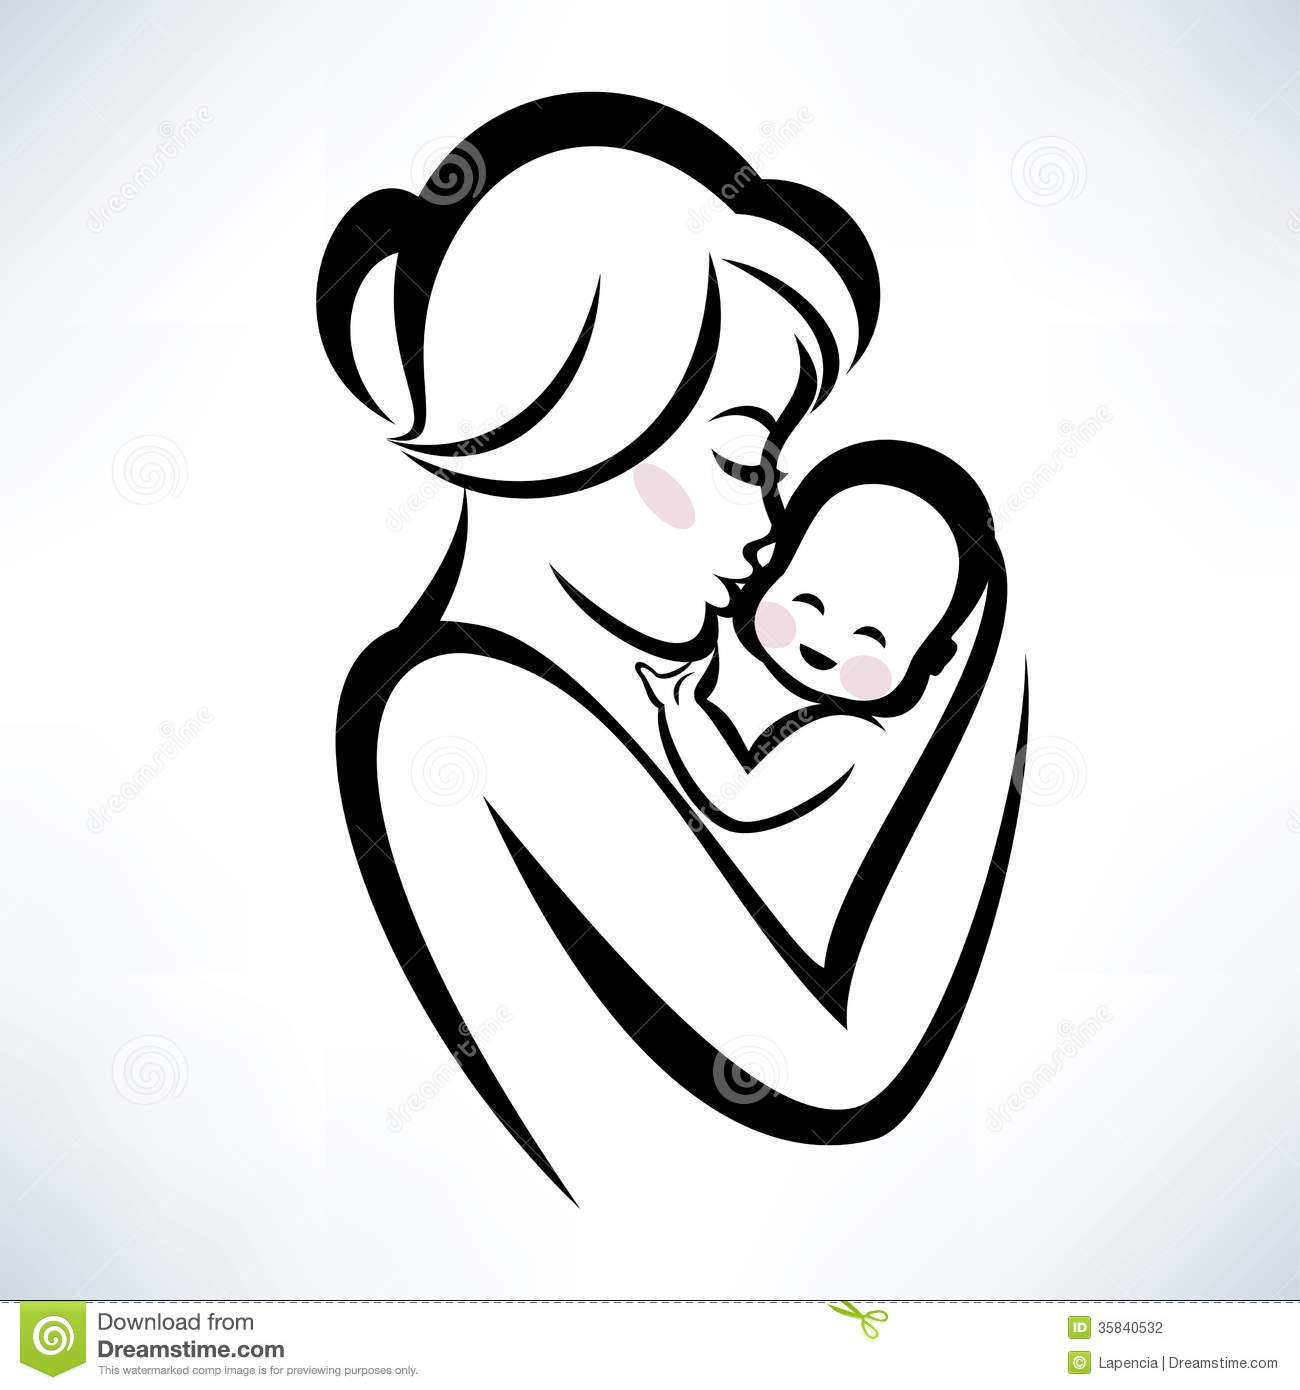 mom and child clipart-mom and child clipart-8